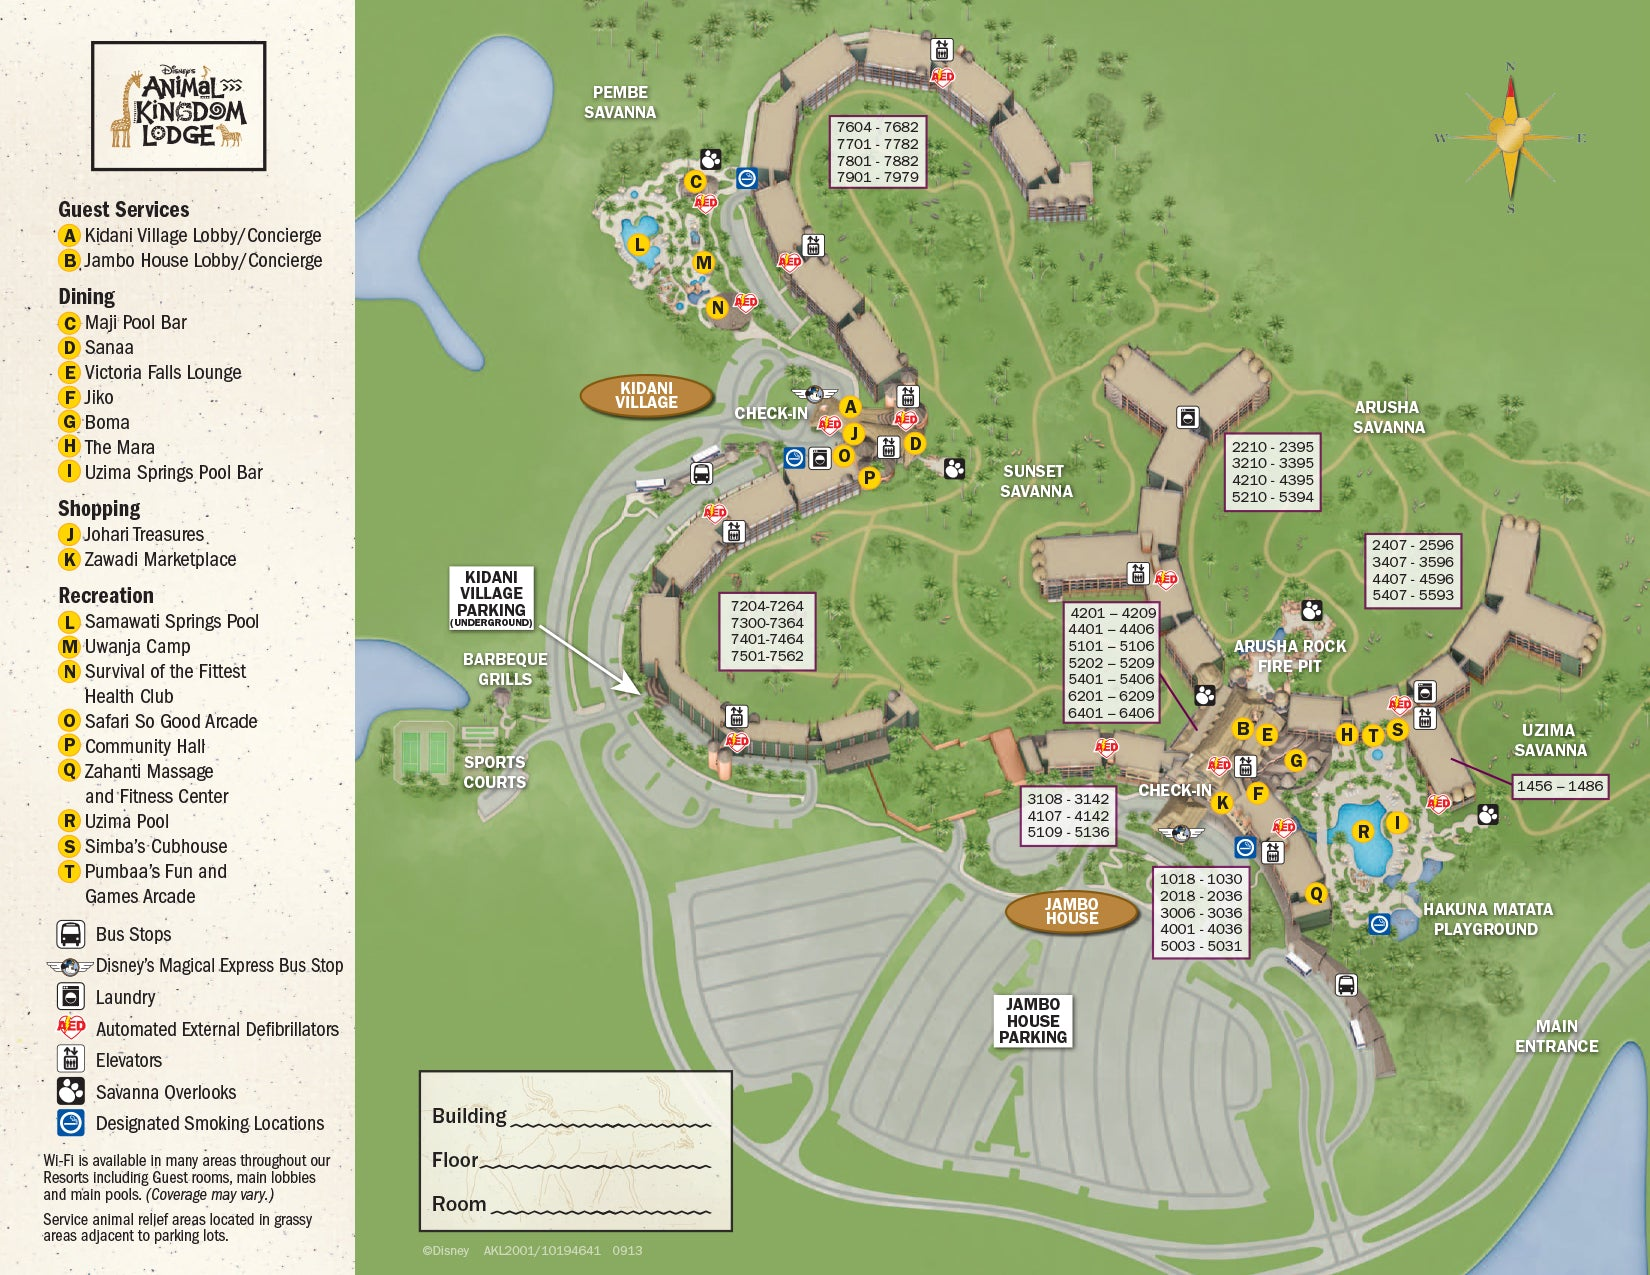 animal kingdom villas map